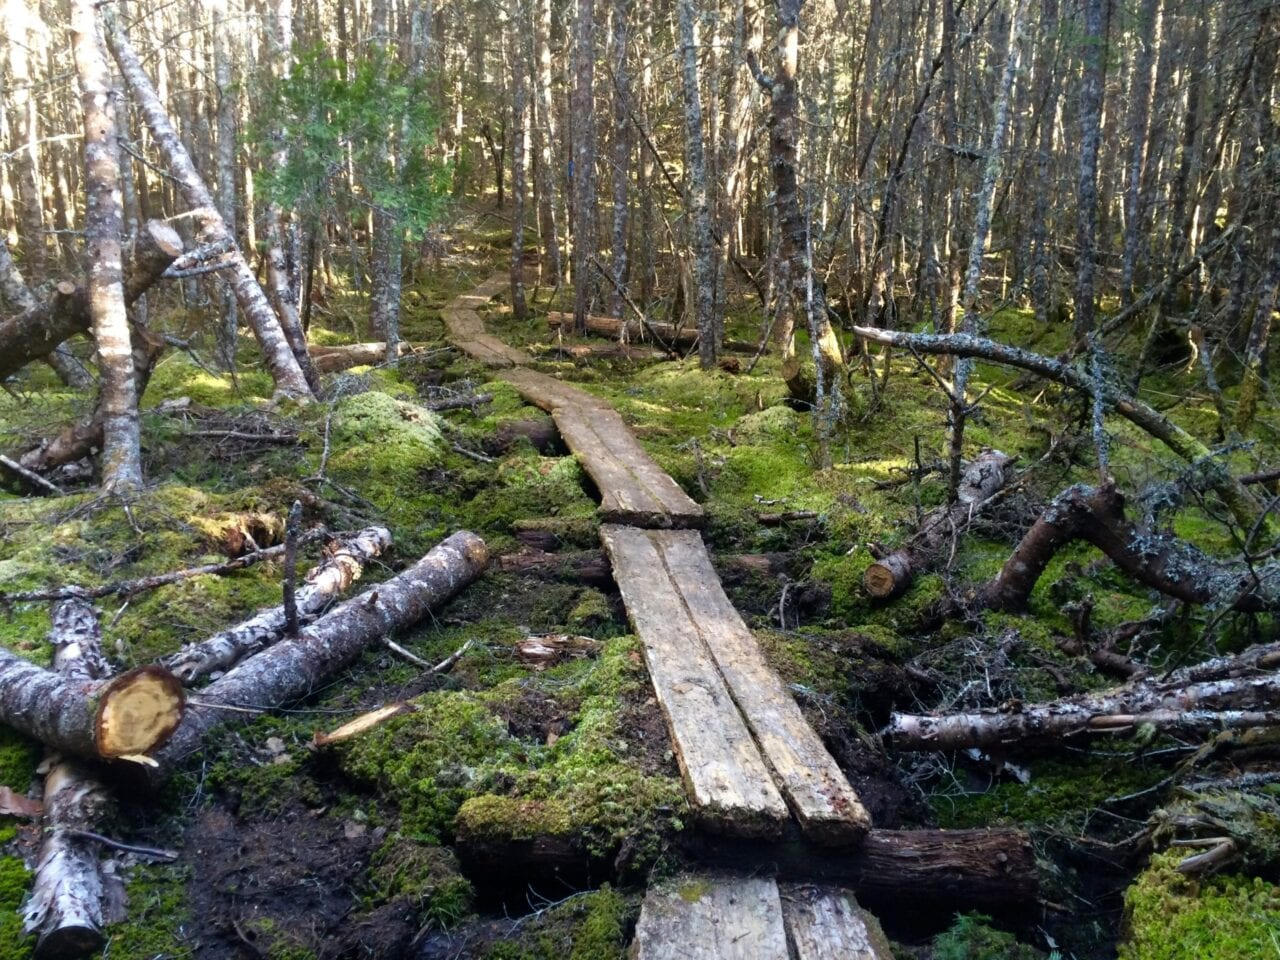 A wooden walkway cuts through a mossy swamp and forest.